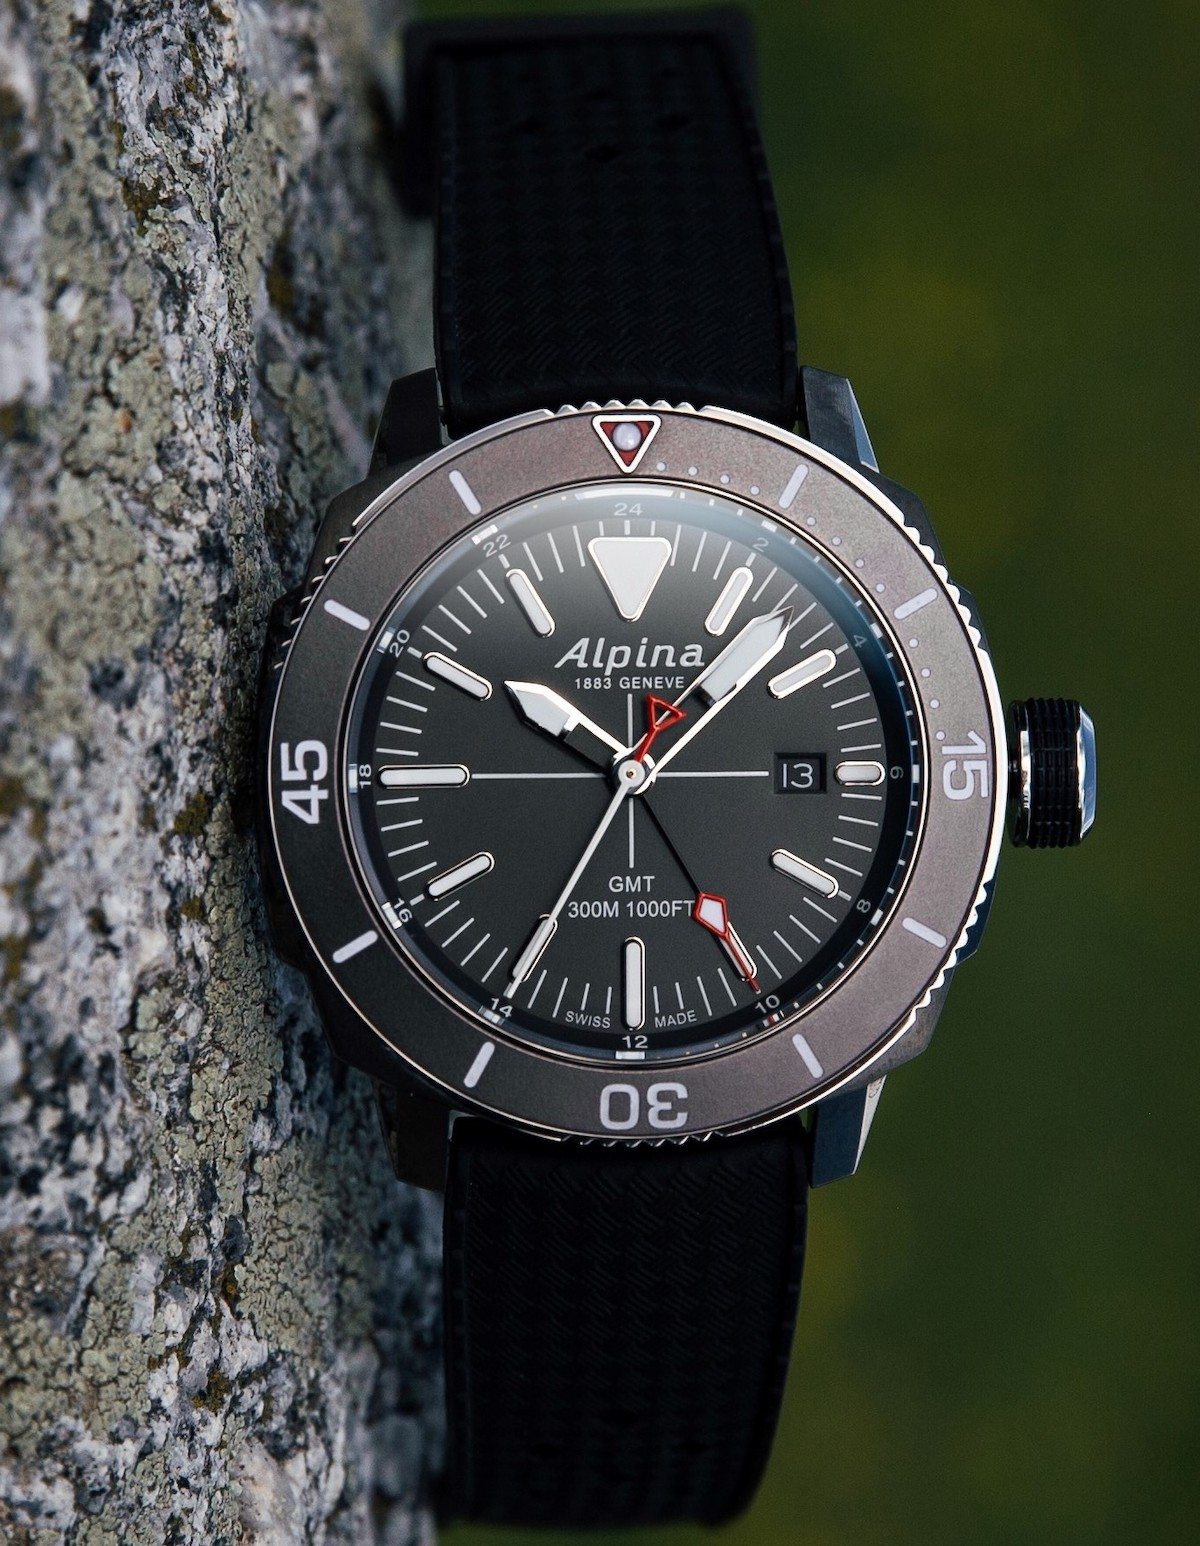 Reach Your Summit with Alpina Watches